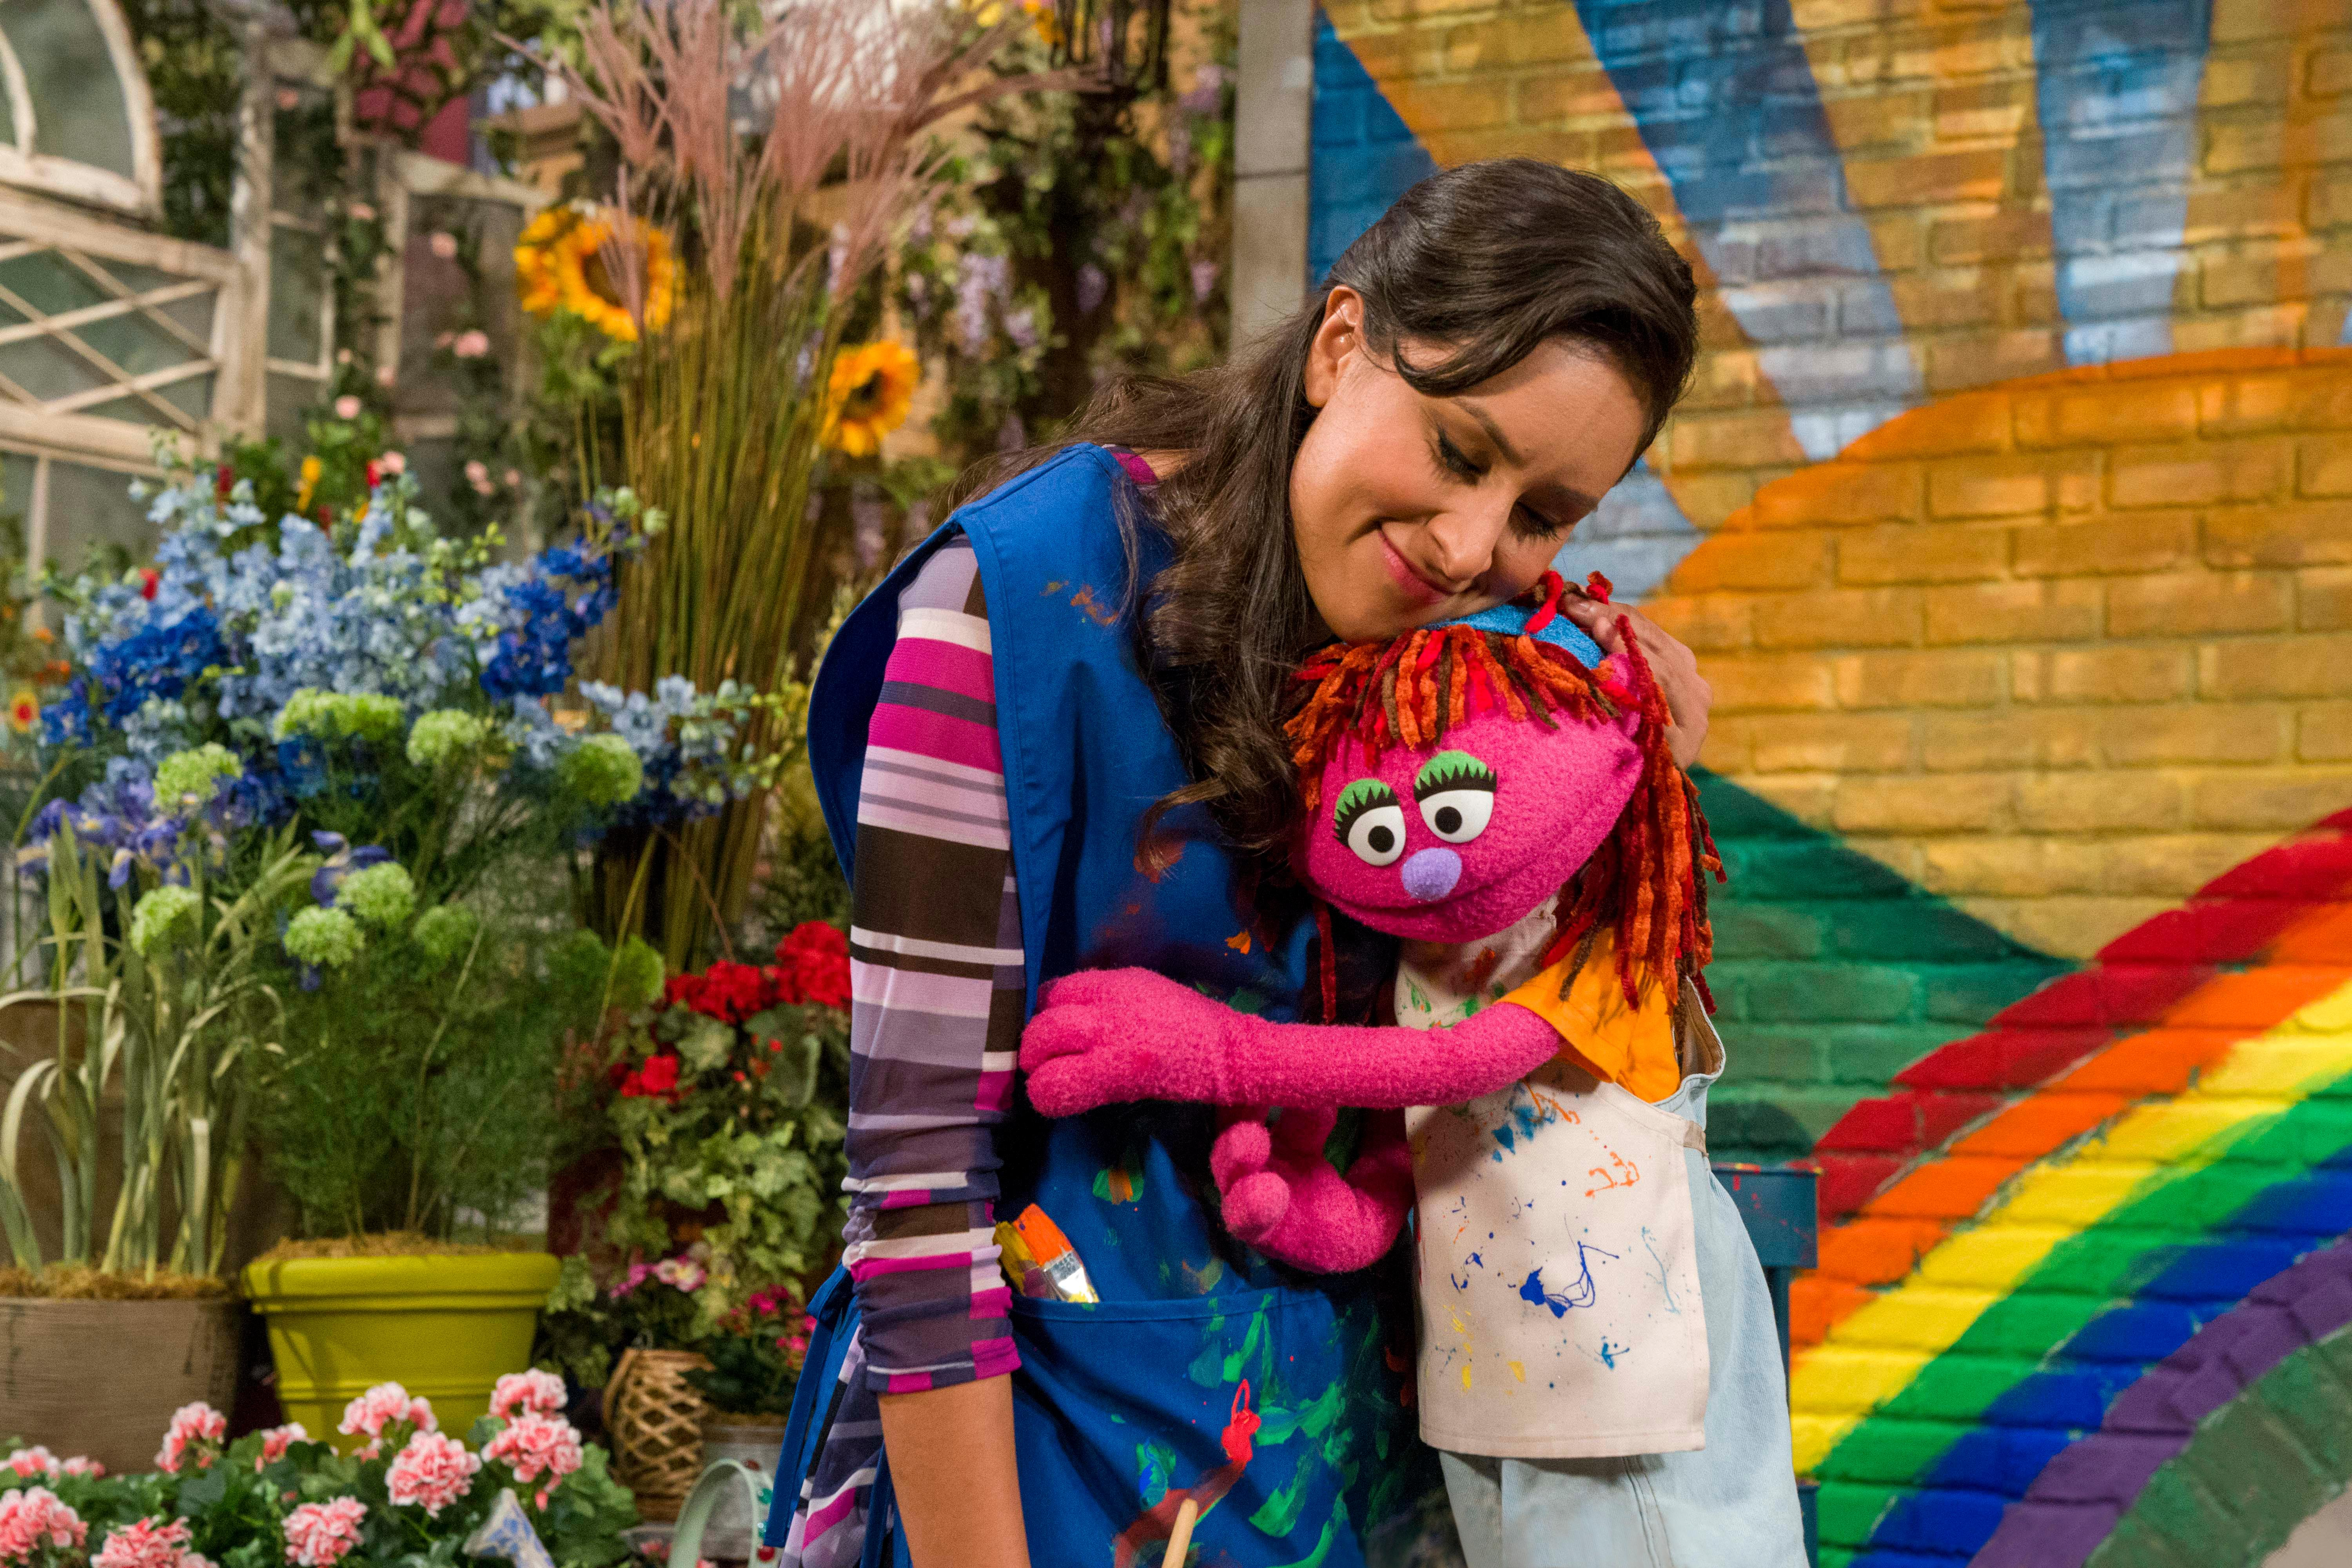 Sesame Street' Muppet will show what homelessness is like from a